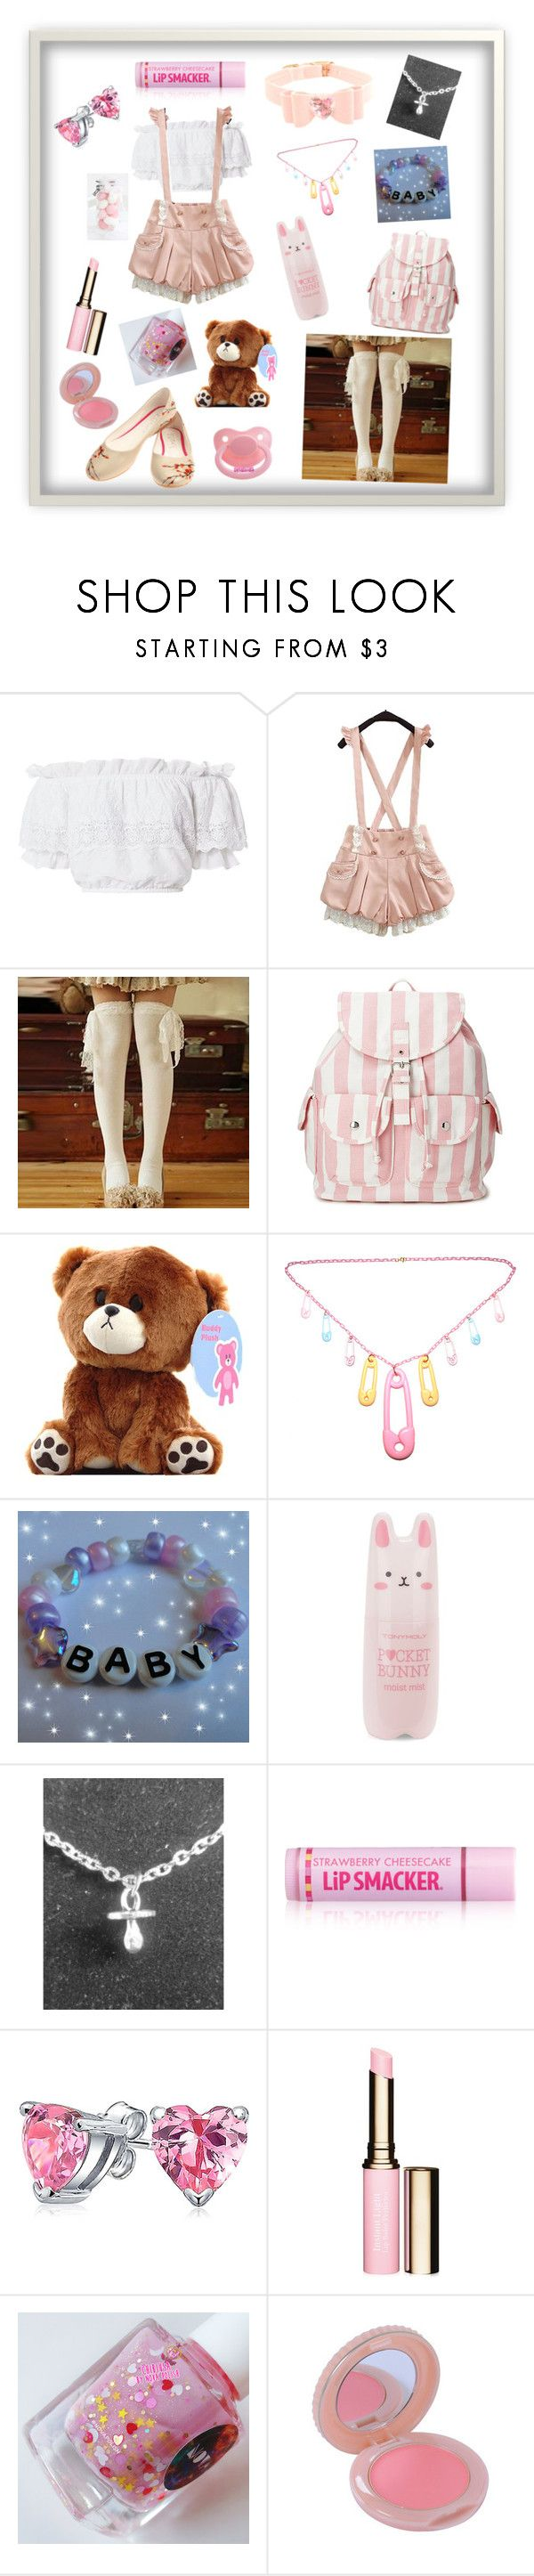 """Kawaii Little"" by redd23 ❤ liked on Polyvore featuring LoveShackFancy, Moriville, Forever 21, Tony Moly, Venom, Bling Jewelry, Clarins and Paul & Joe"